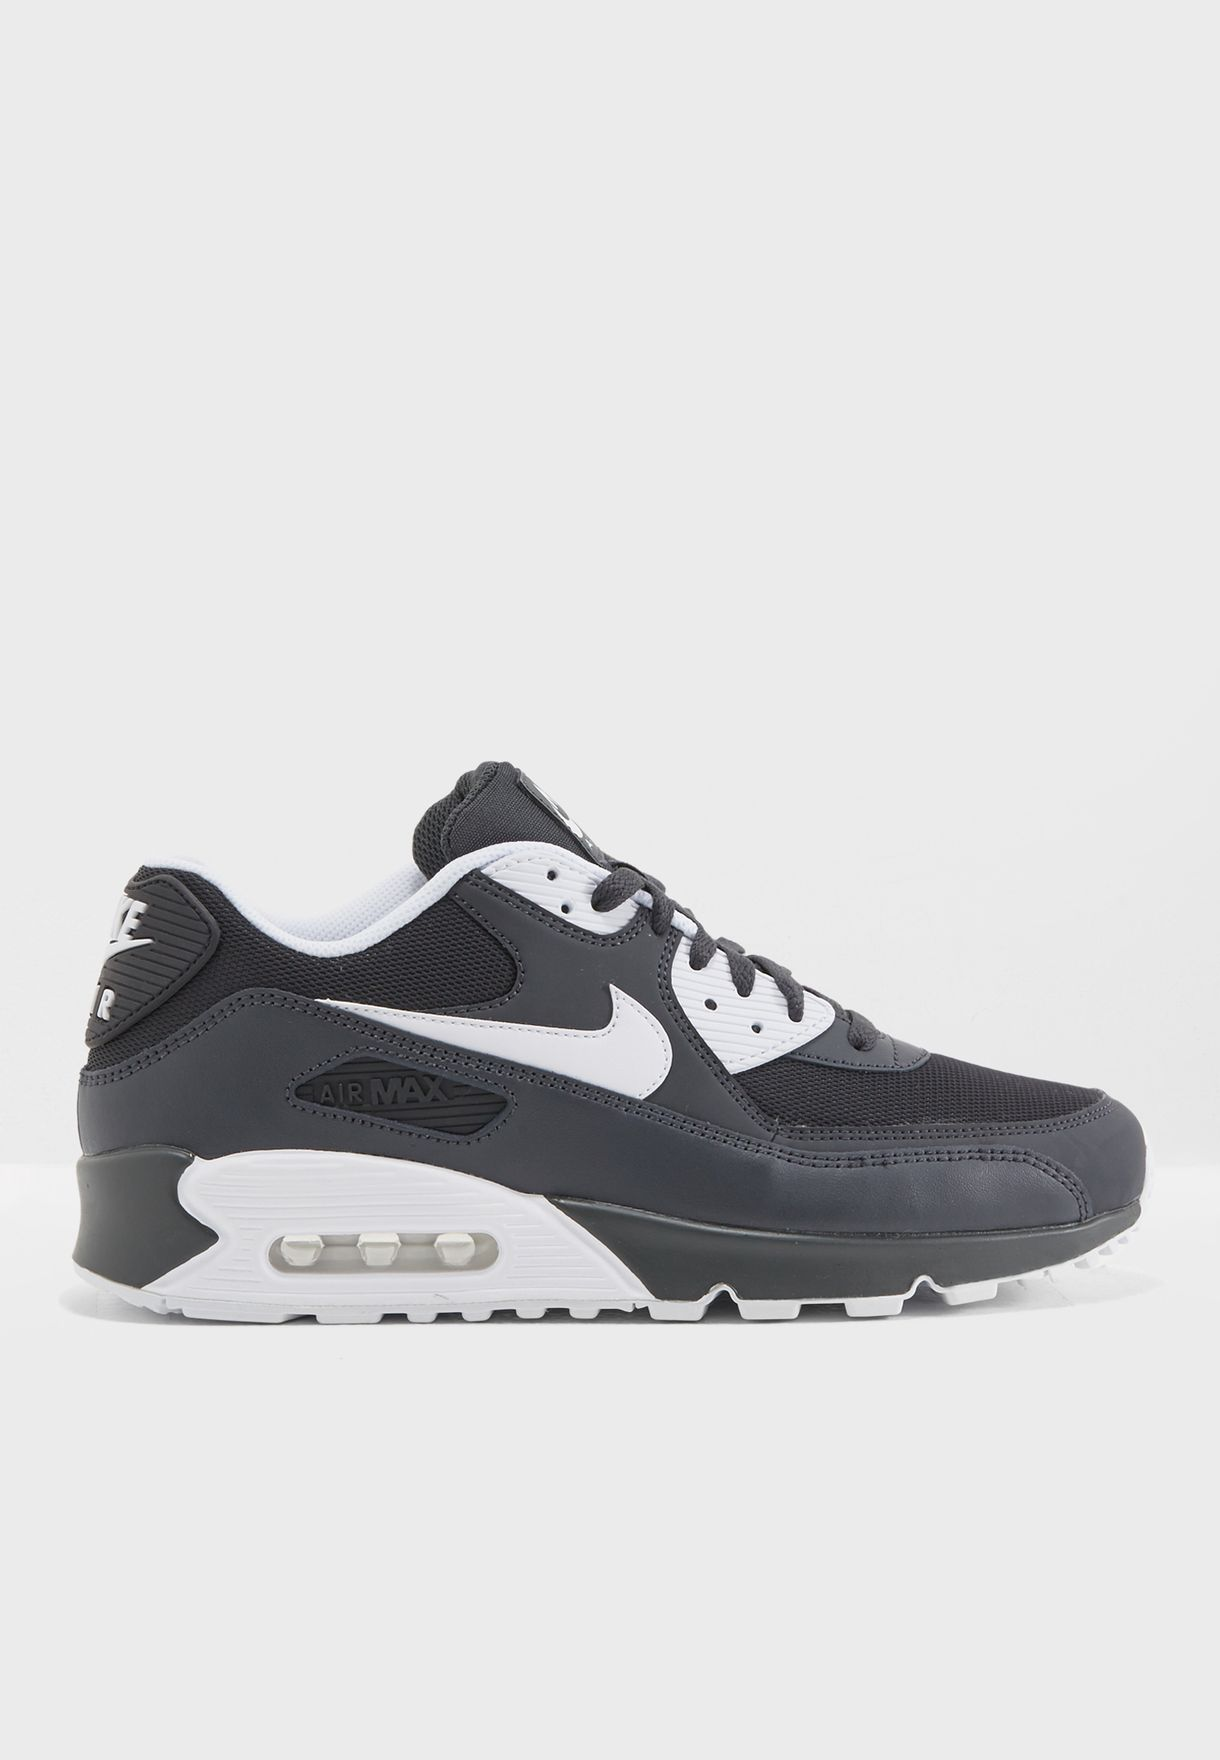 new product b086a 4c0b1 Air Max 90 Essential